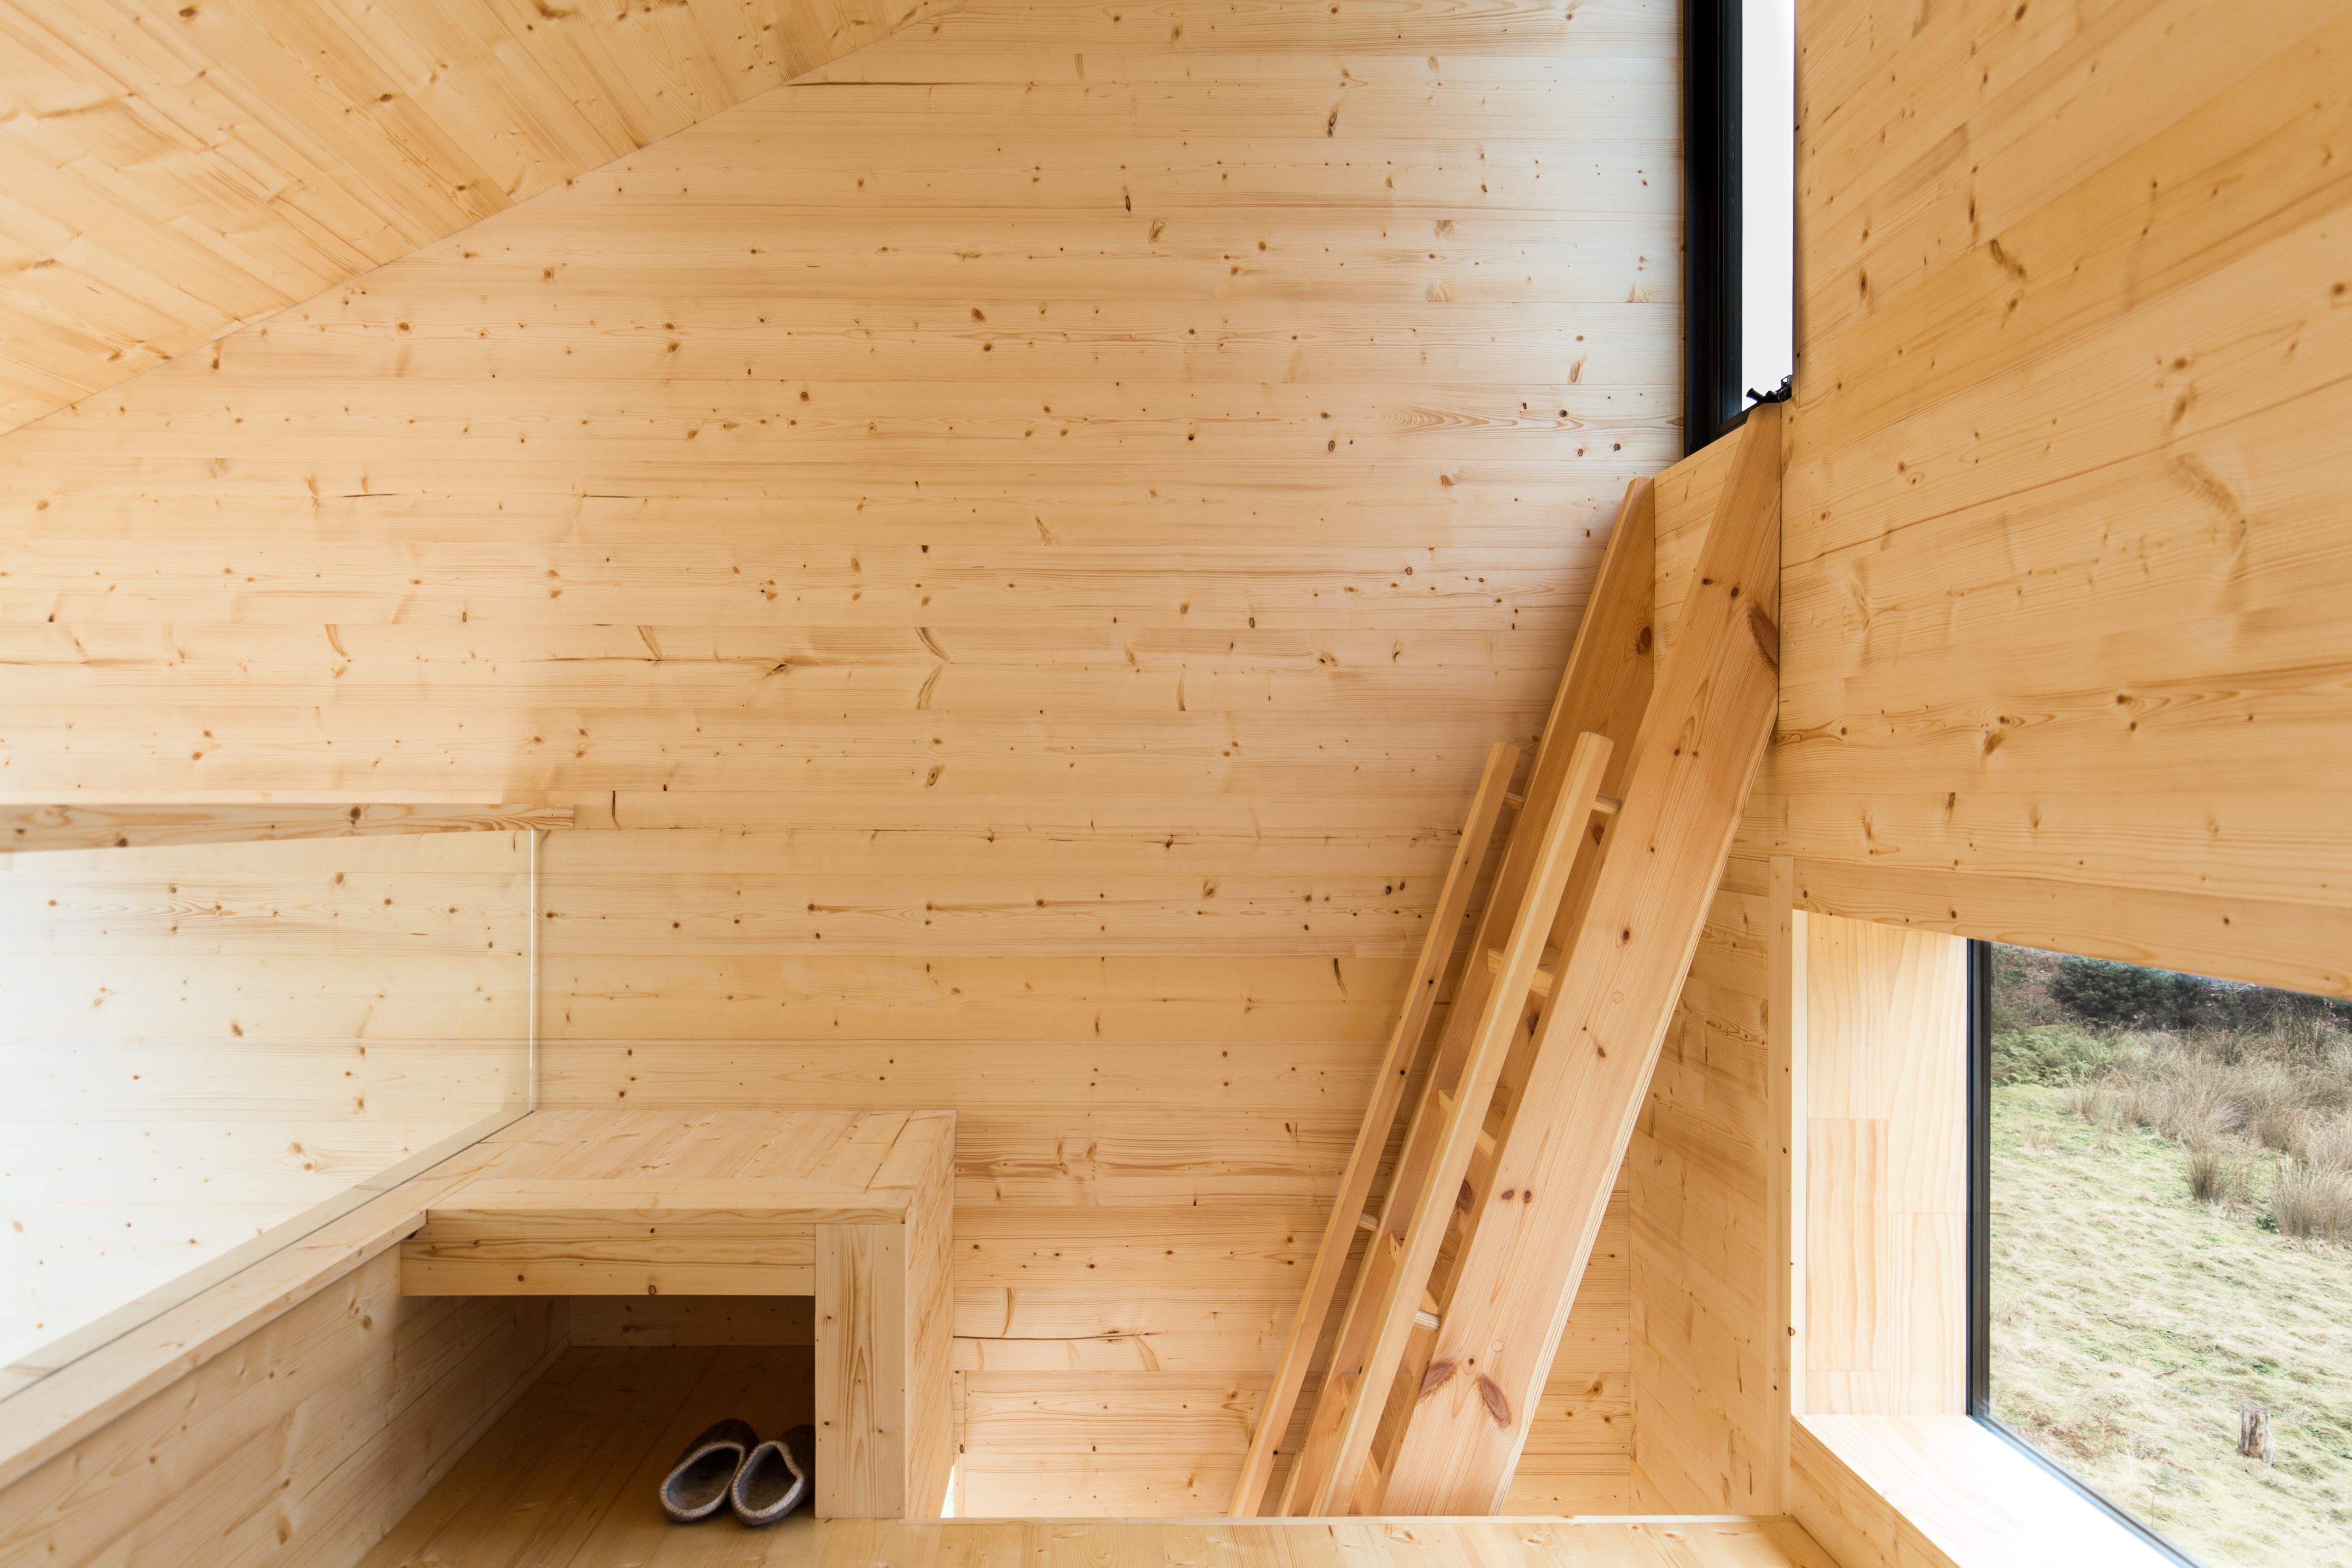 This Off Grid Modern Day Log Cabin Draws Inspiration From The Client's Past, Who Was Born In Taiwan And Grew Up Experiencing Japanese Architect